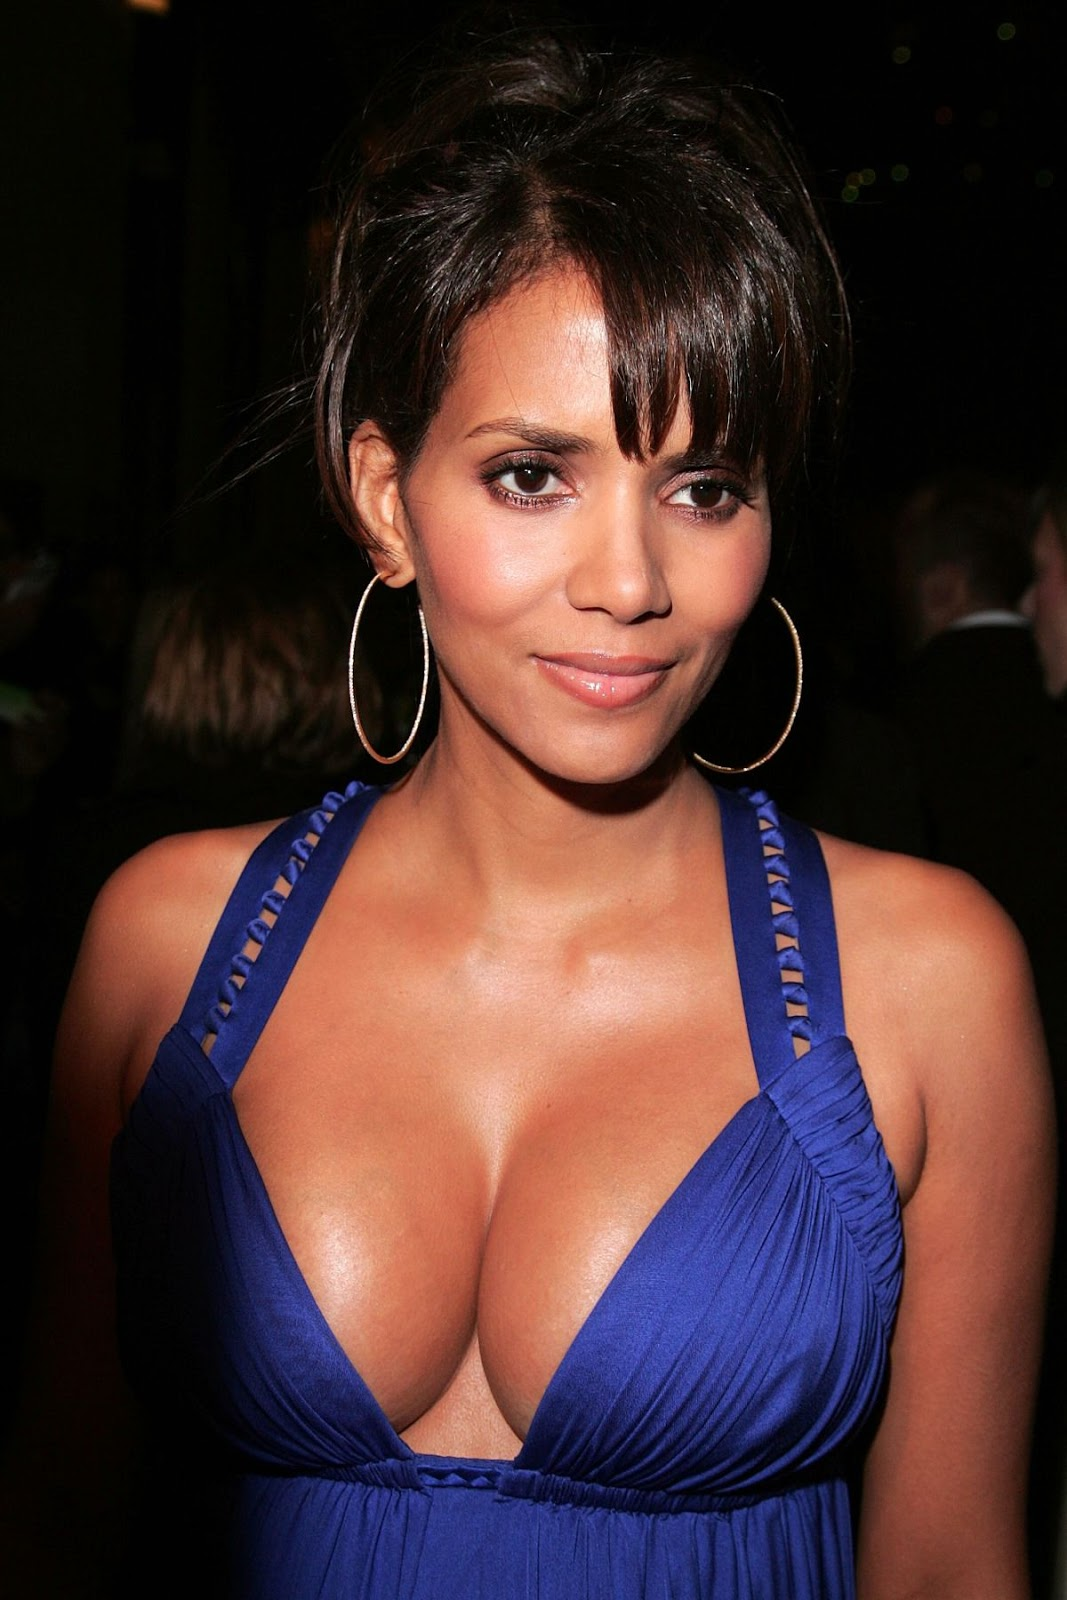 Halle Berry Workout and Diet Secret | Muscle world